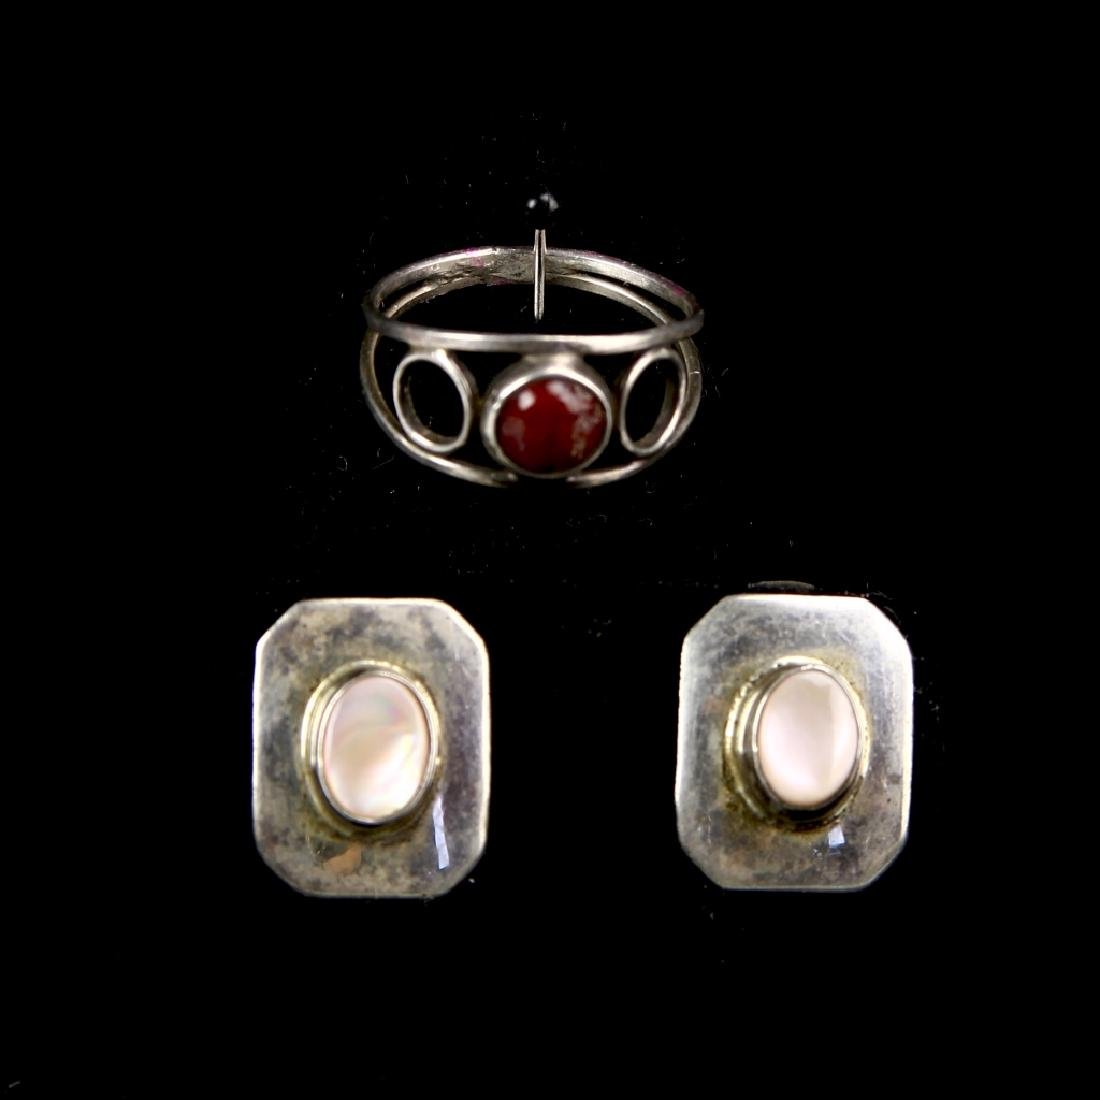 Silver Ring and A Pair of Silver Earrings